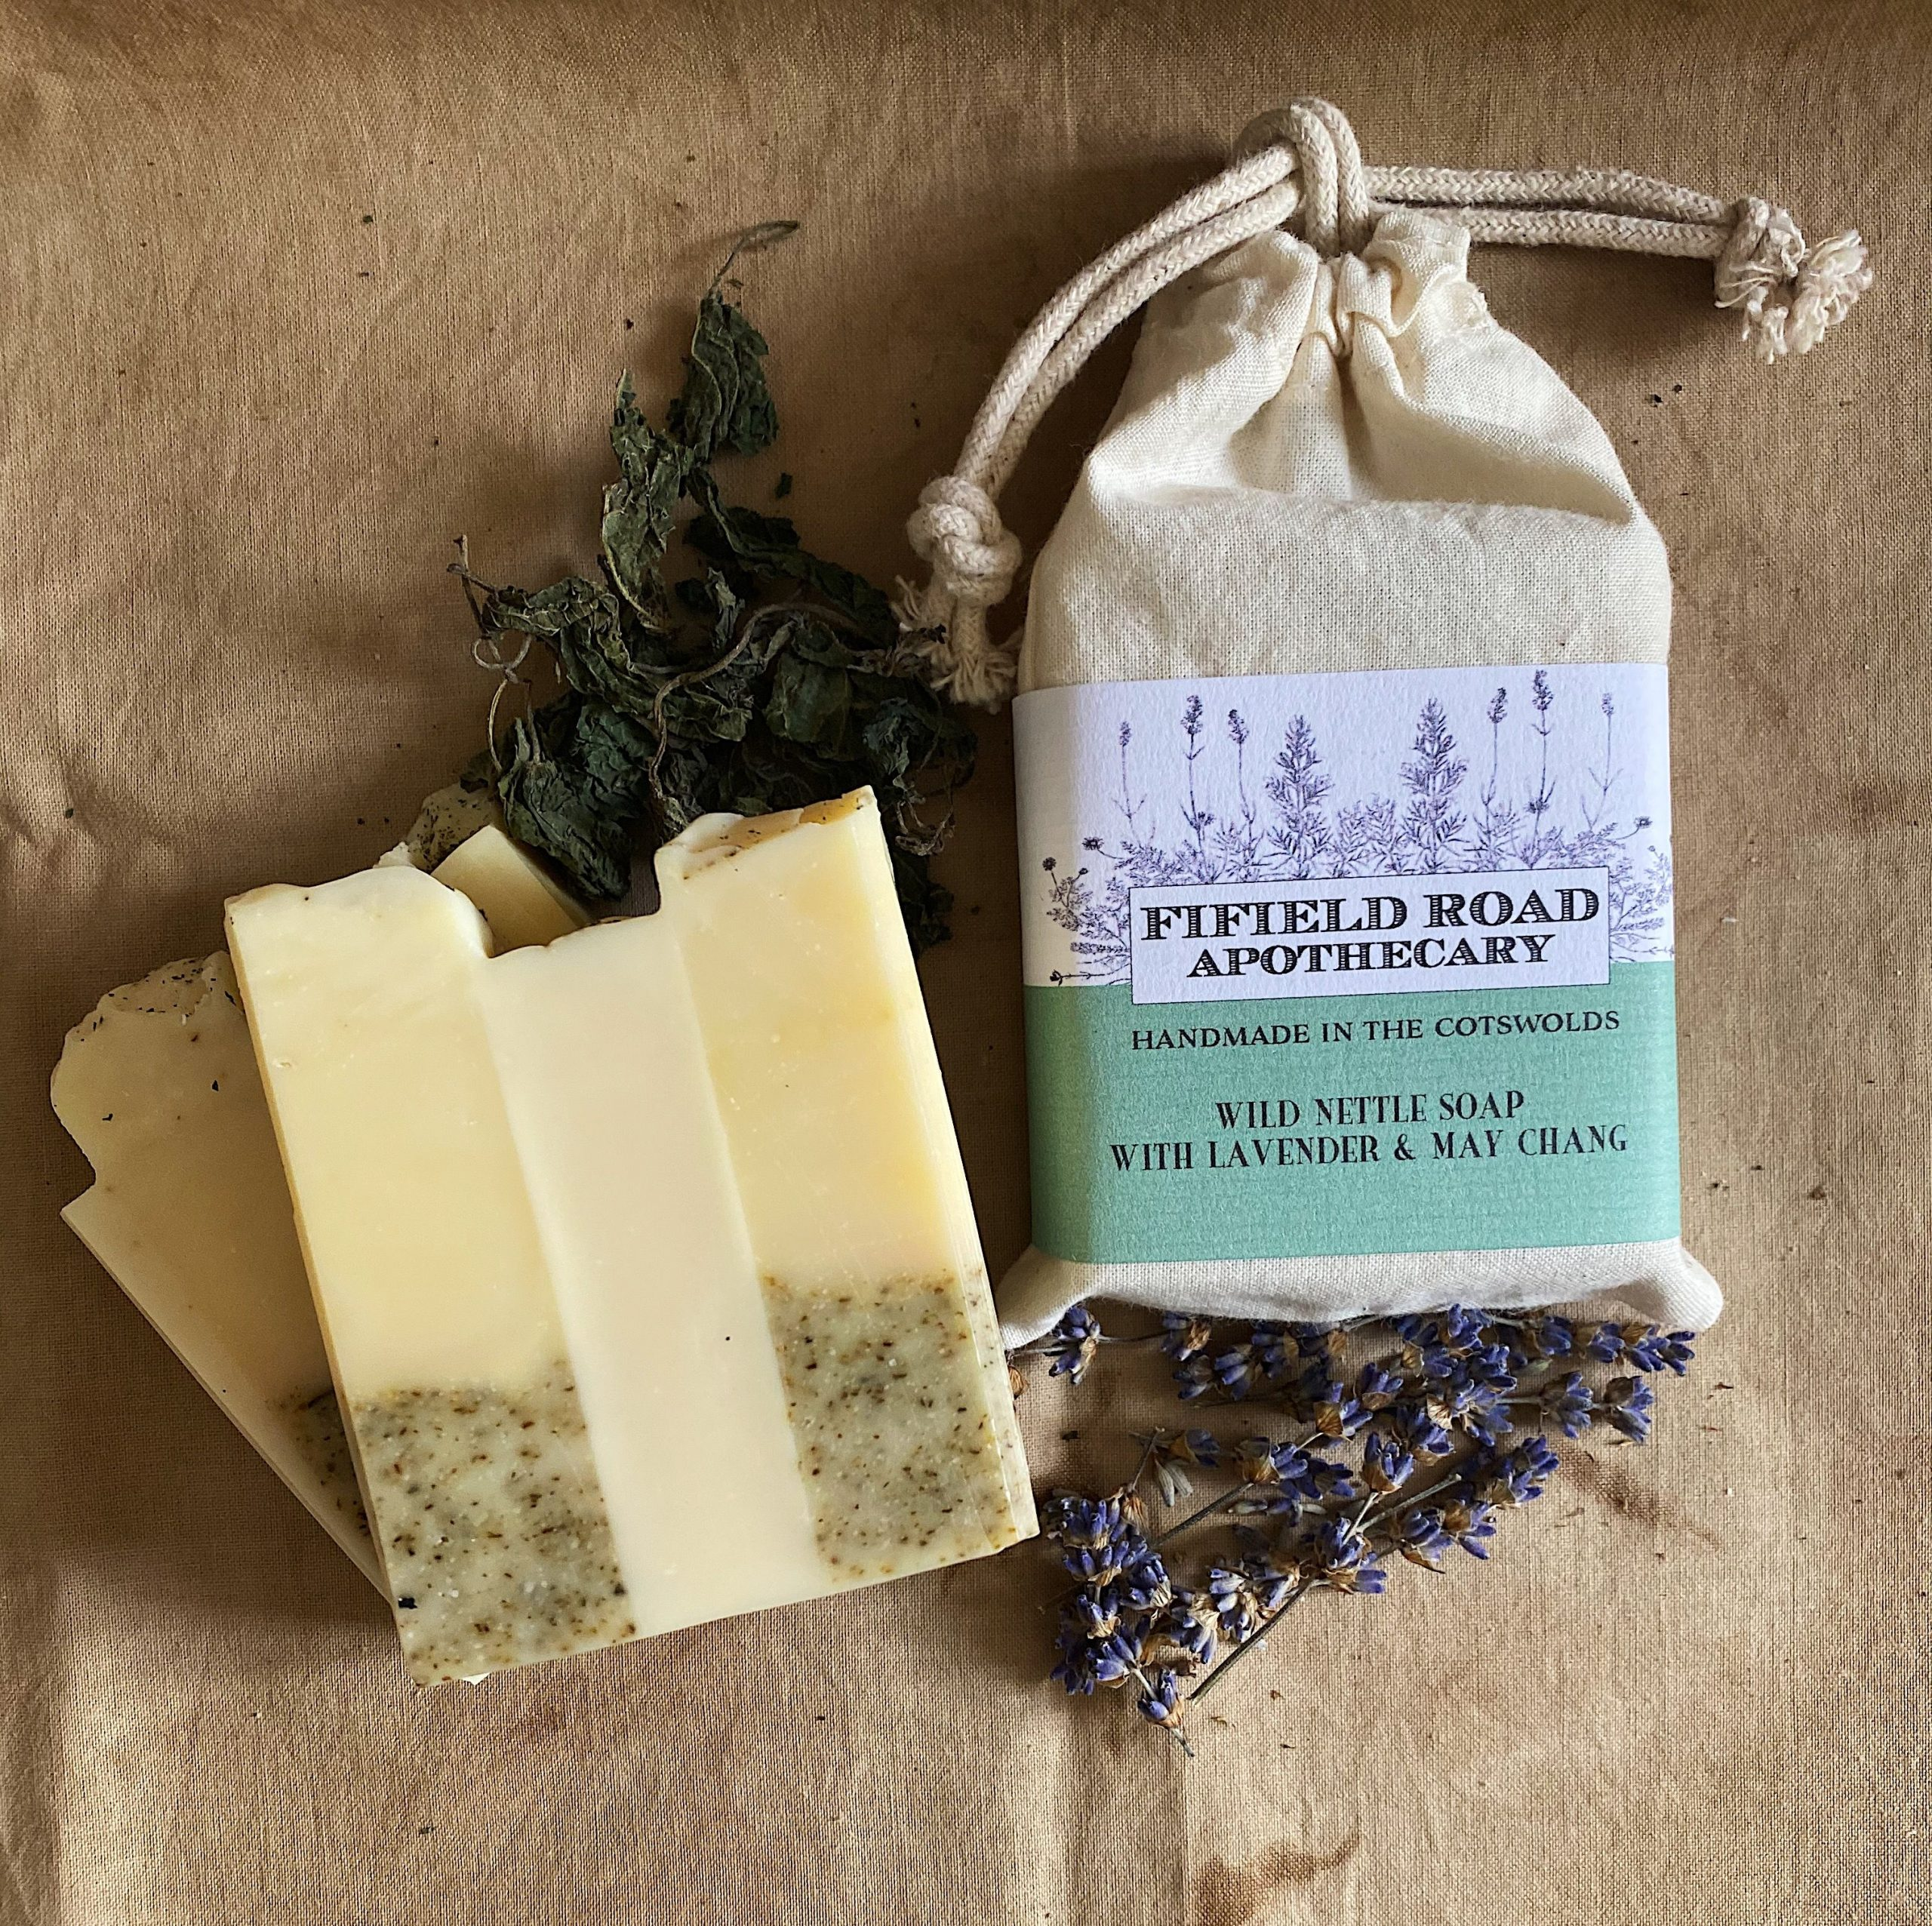 Nettle Soap with lavender and may chang by the Fifield Road Apothecary